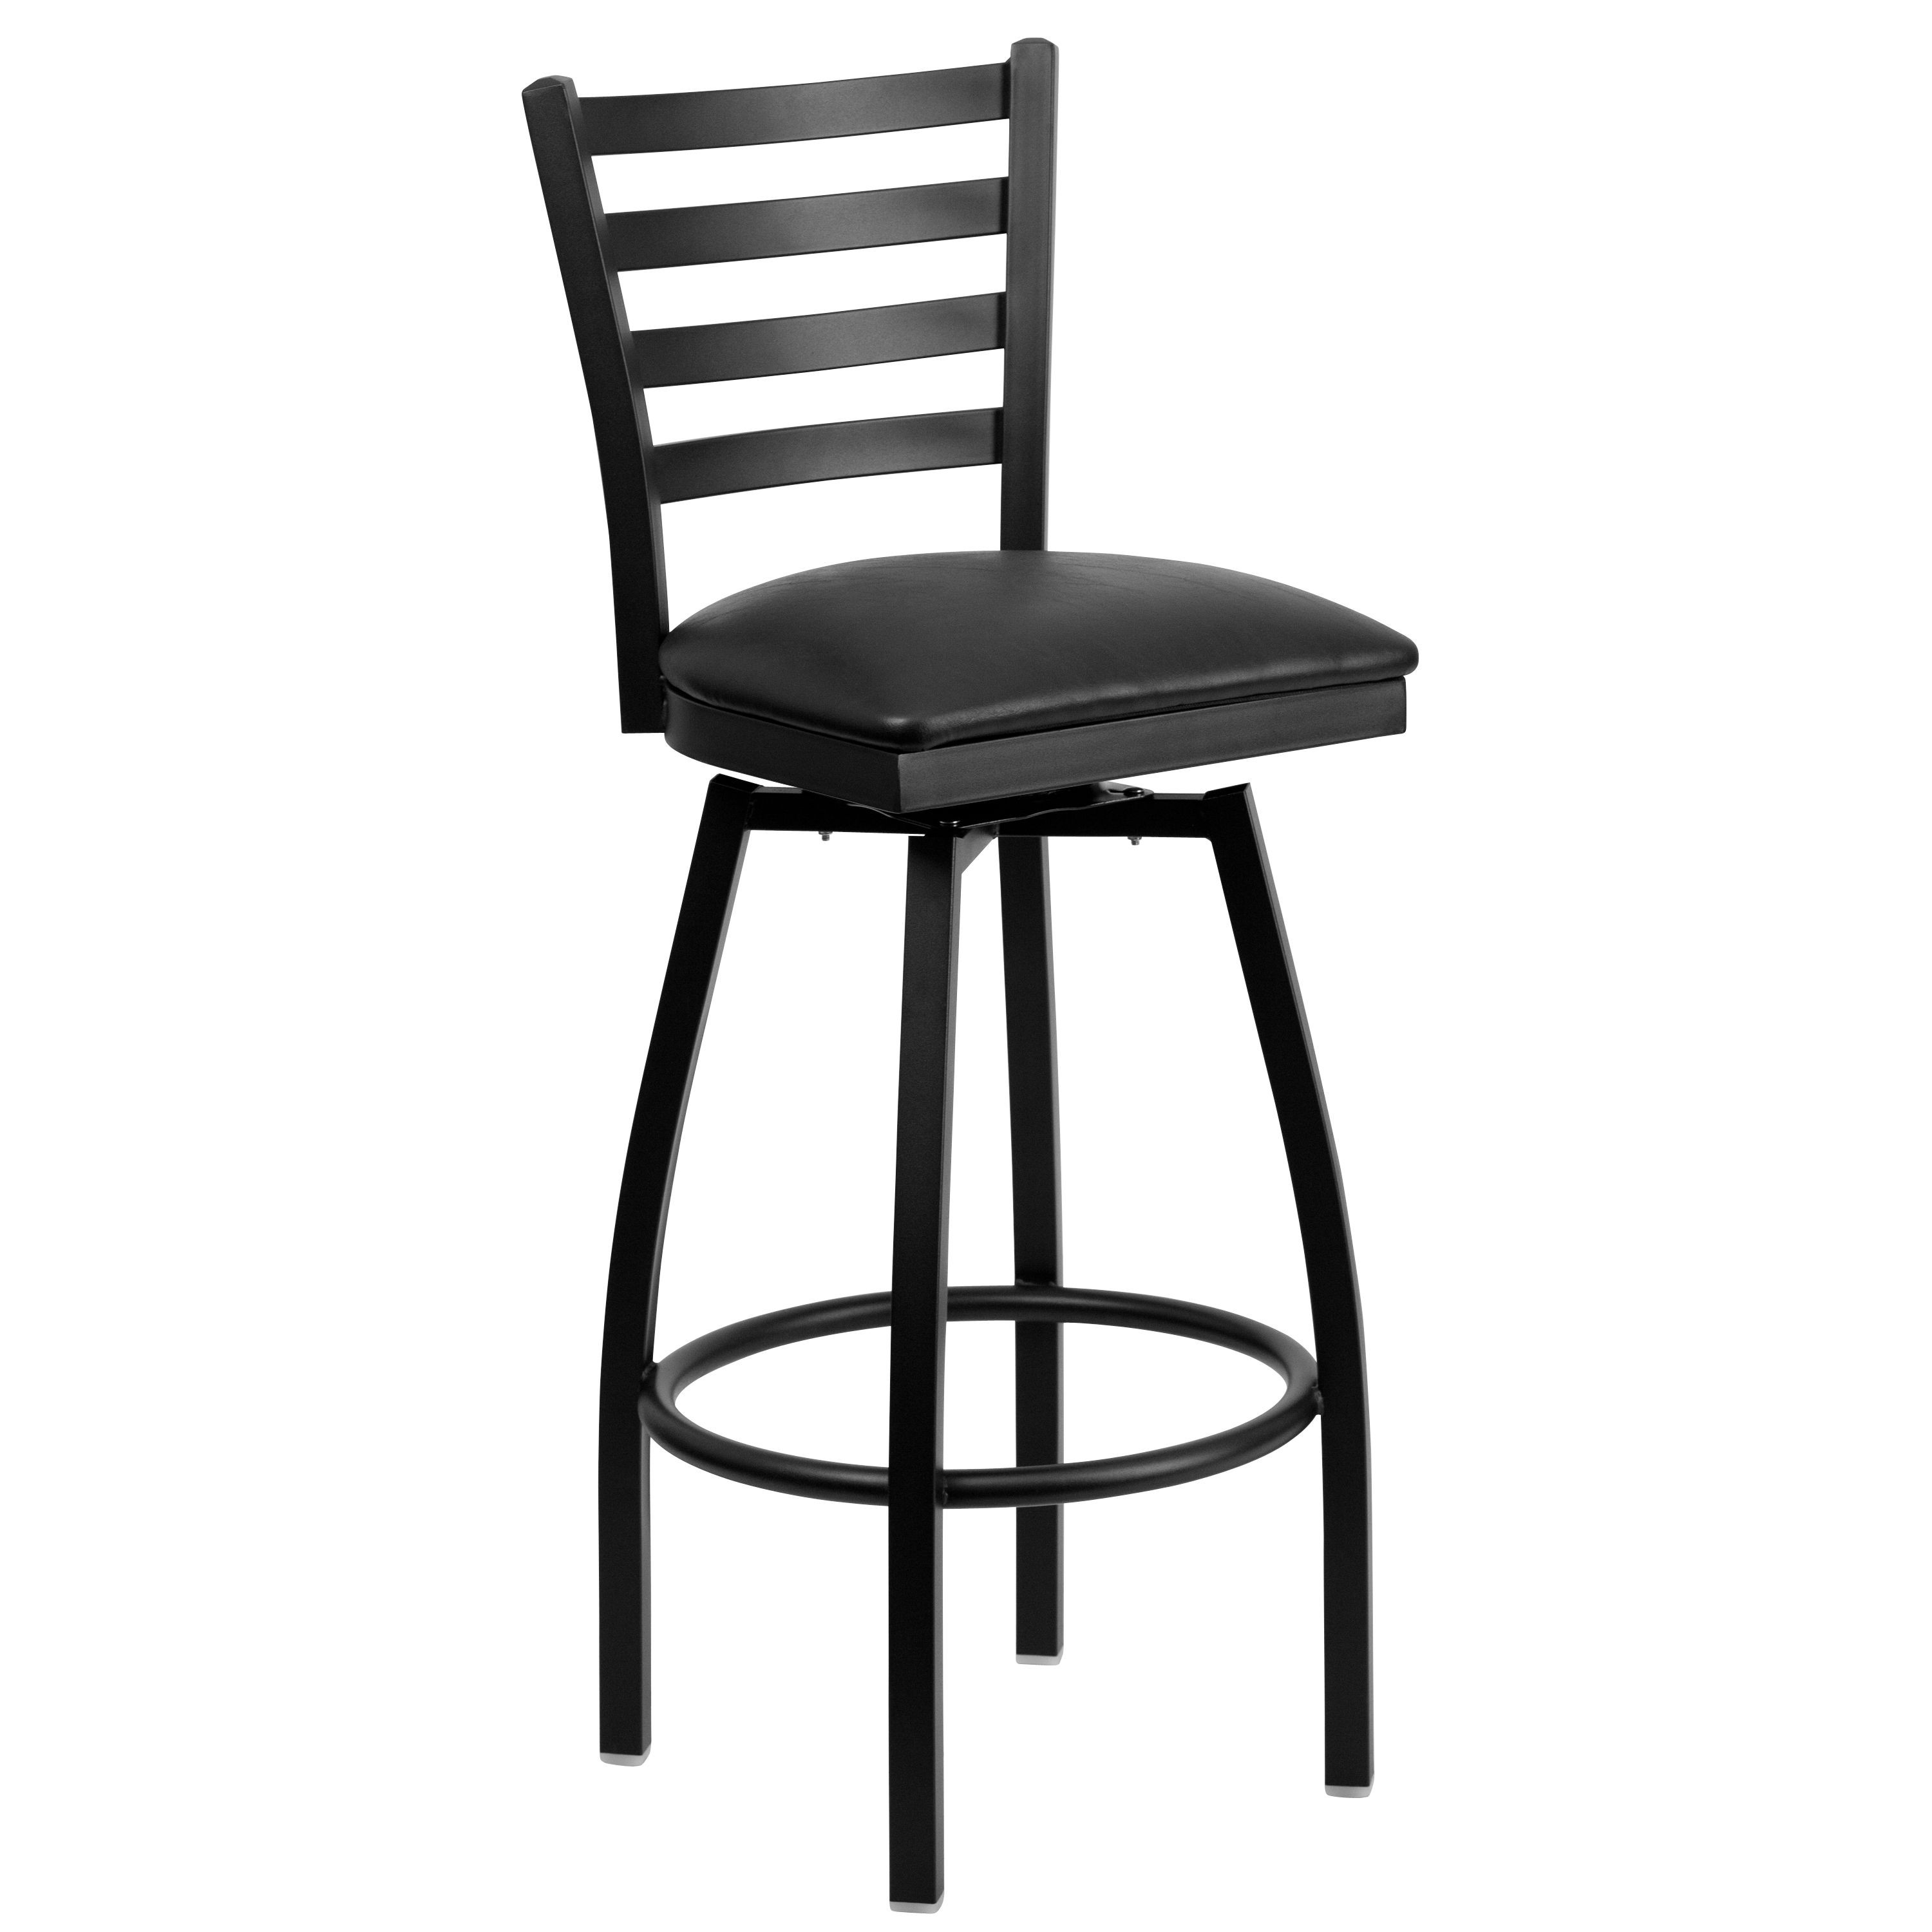 HERCULES Series Black Ladder Back Swivel Metal Bar Stool - Black Vinyl Seat